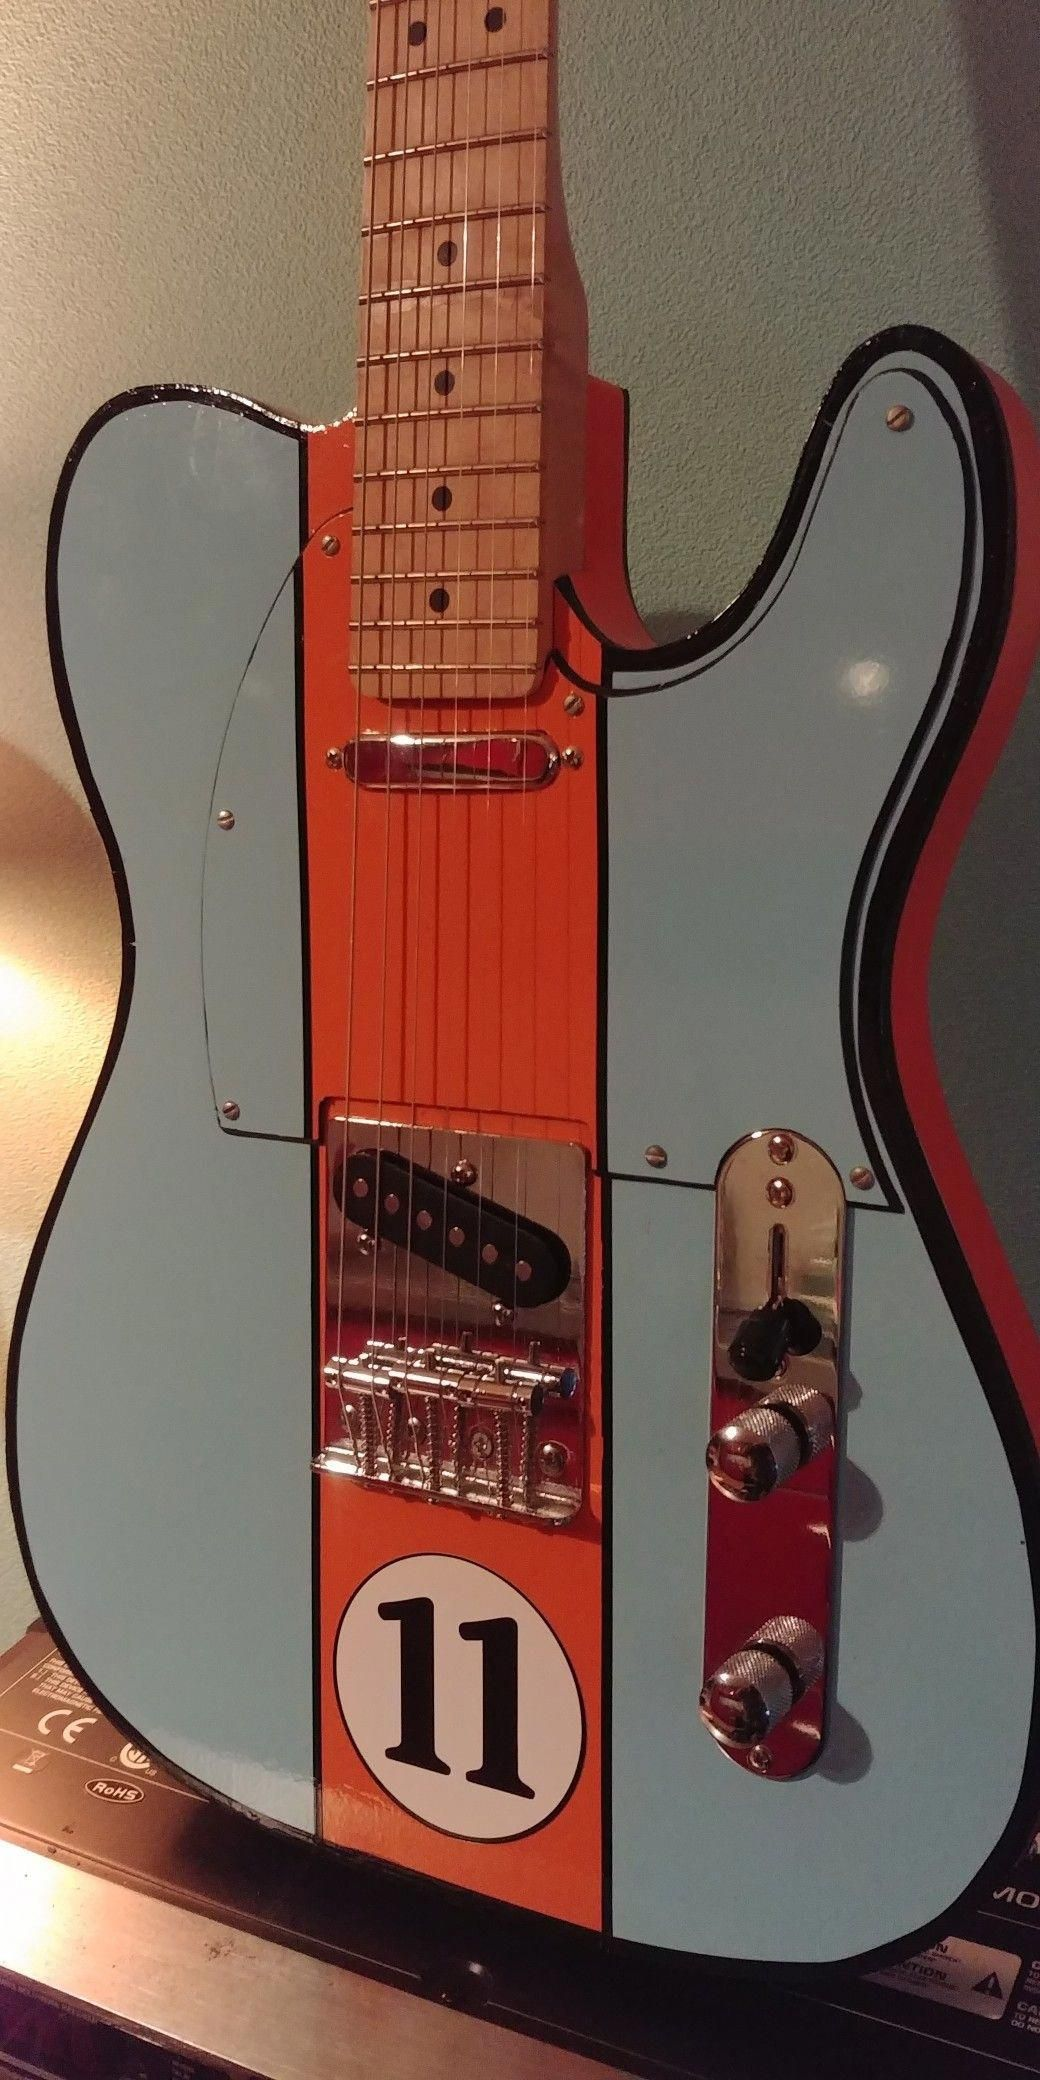 these fender stratocaster are stunning fenderstratocaster guitar in 2019 guitar guitar for. Black Bedroom Furniture Sets. Home Design Ideas